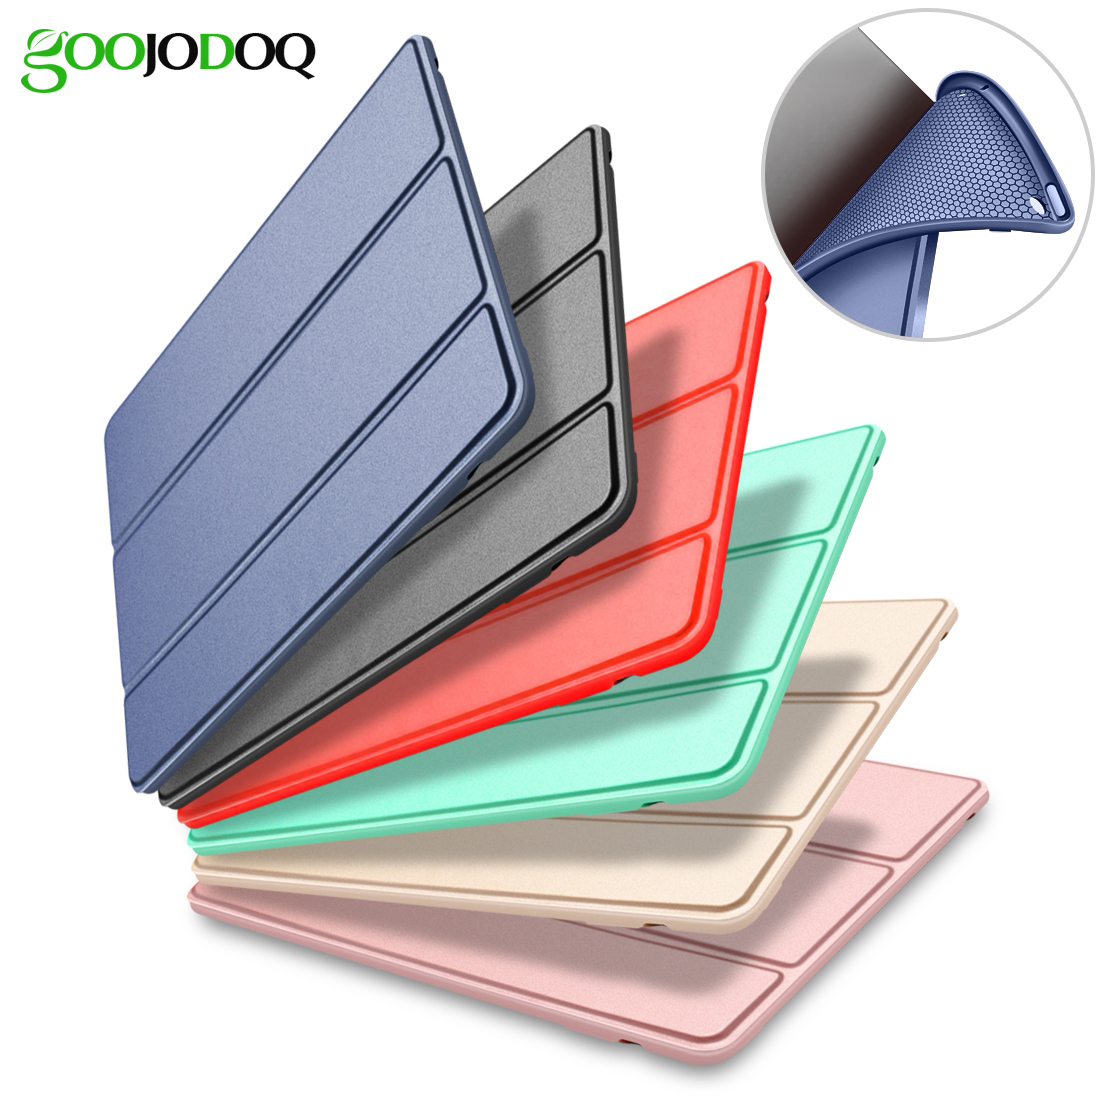 For iPad Pro 10.5 Case PU Leather A1701 / A1709 with Silicone Soft Back Smart Cover for iPad Pro 10.5 2017 Case Auto Wake/Sleep hot ultra thin leather smart stand case for ipad pro 10 5 auto transformers cover for new ipad pro 10 5 a1701 a1709 film stylus